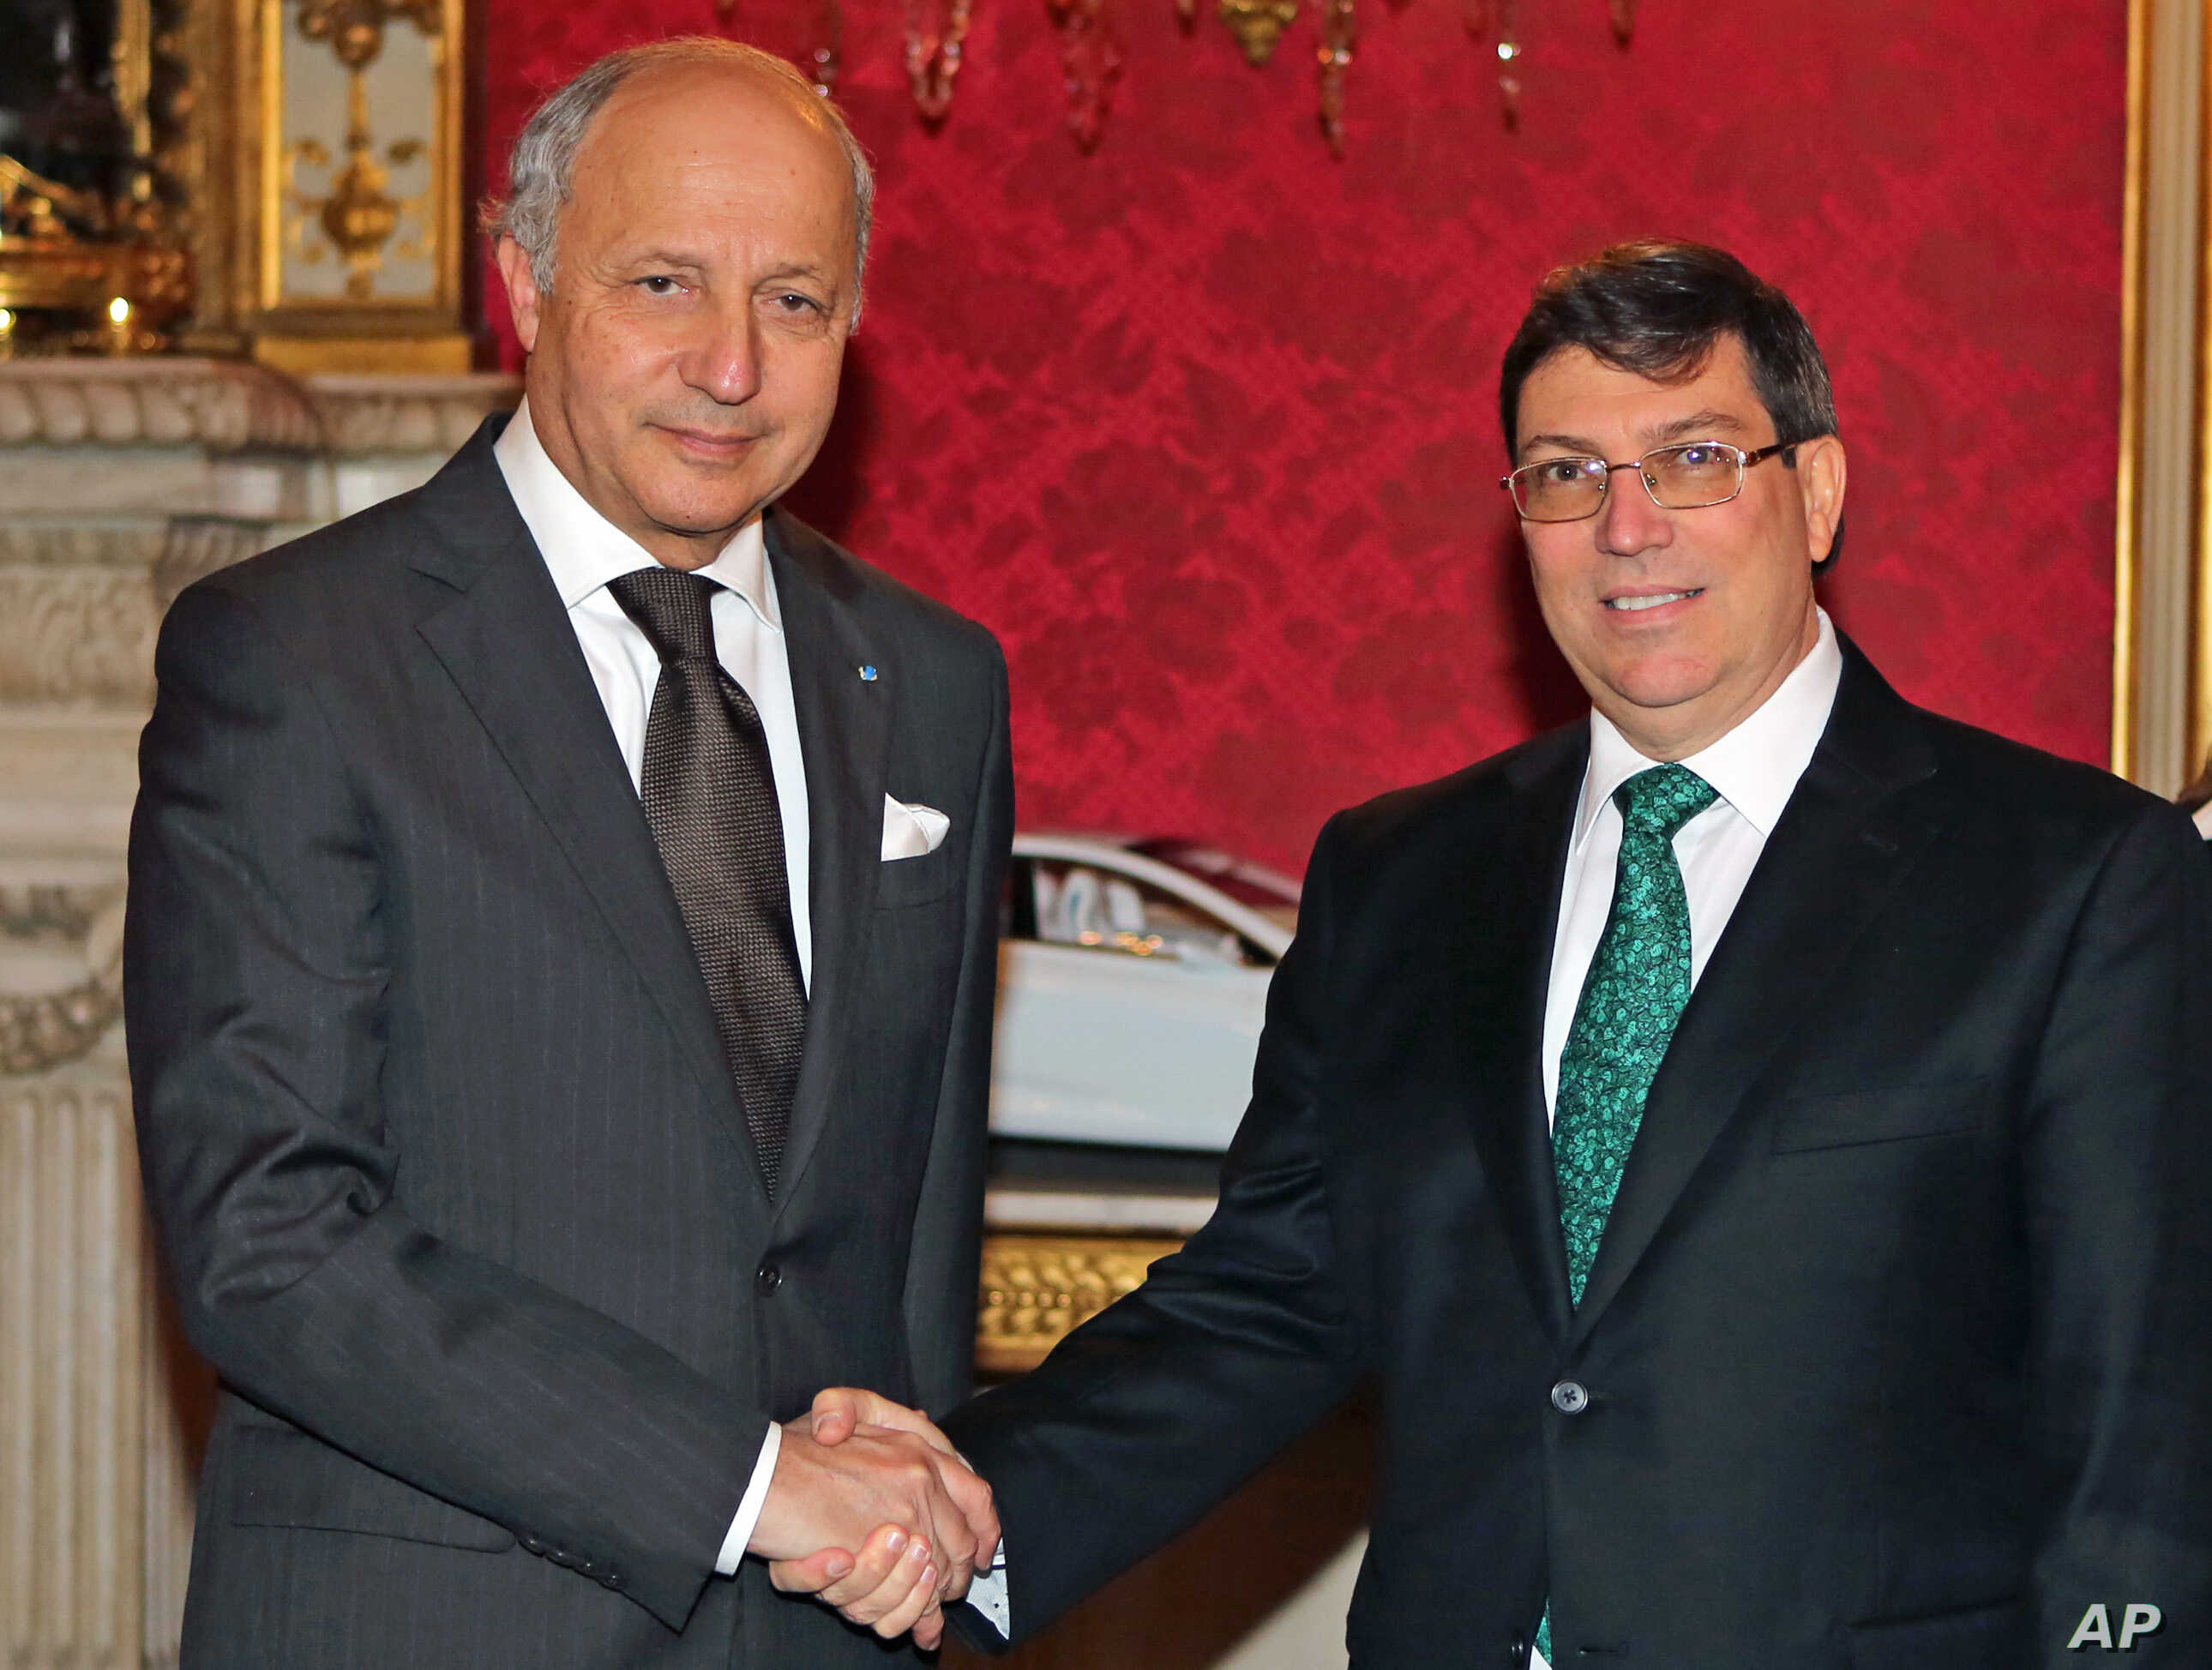 French Foreign Minister Laurent Fabius (l) greets his Cuban counterpart Rodriguez Parilla, prior to their meeting at the foreign ministry in Paris, March 14, 2014.